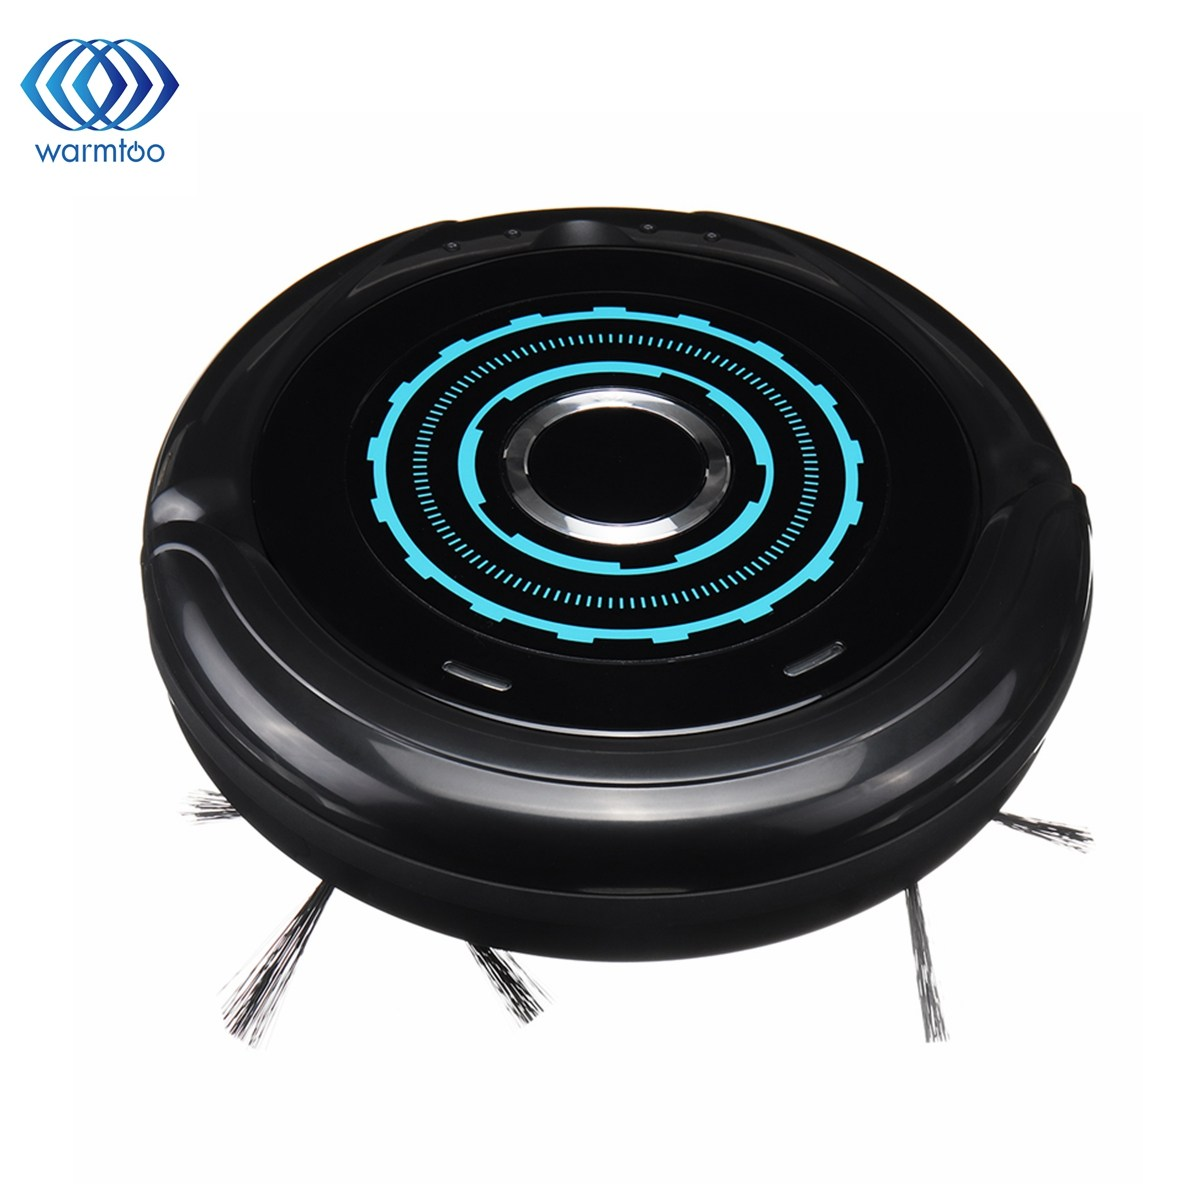 Home 3 in 1 Suction/Sweep/Mop Automatic Smart Vacuum Cleaner with Brush Floor Cleaning Sweeper Household Cleaning Black swdk wipe mopping machine sweep floor robot home fully automatic wireless intelligent electric mop vacuum cleaner free shipping